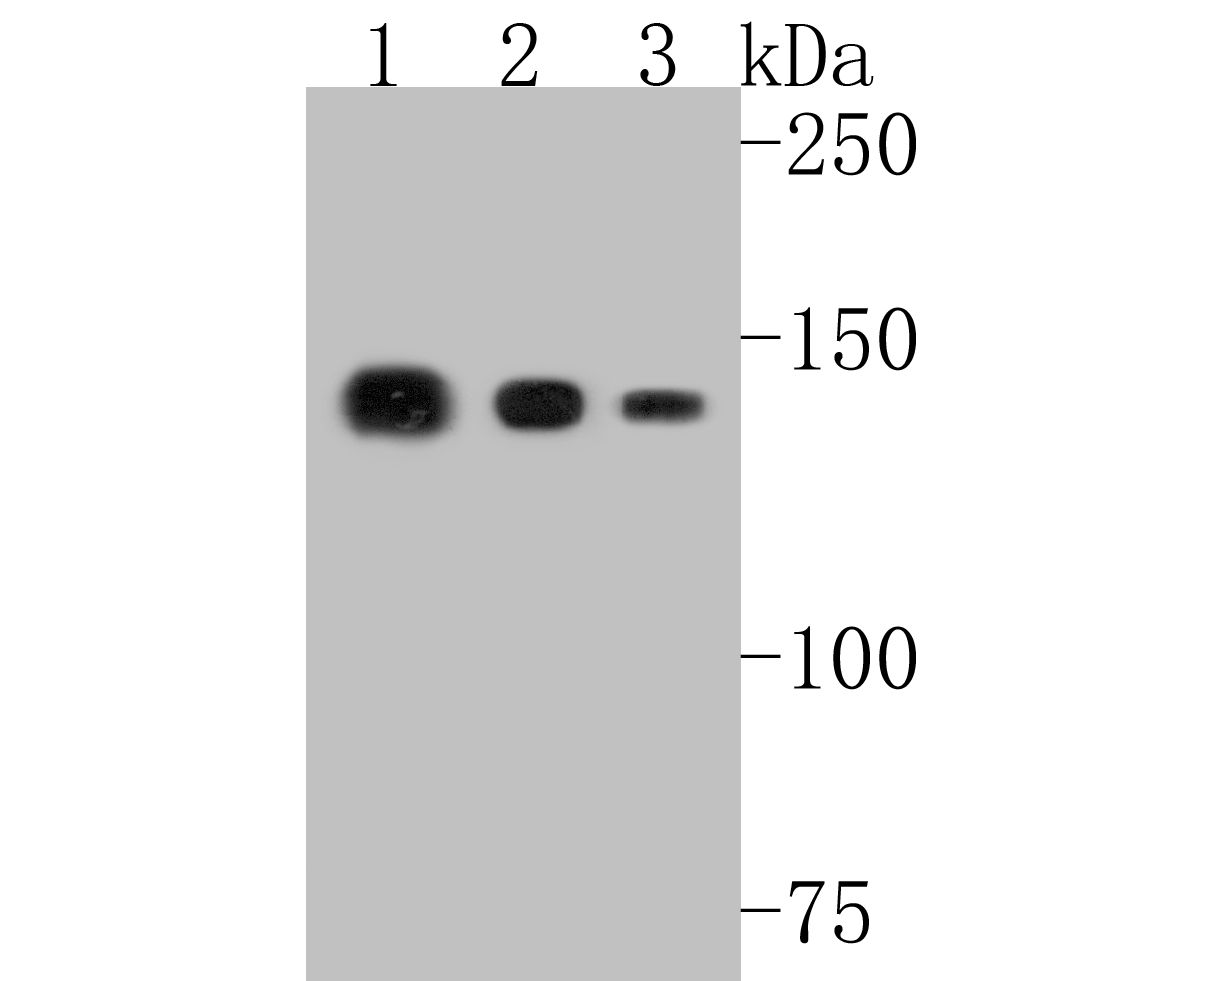 Western blot analysis of Collagen VI on different lysates. Proteins were transferred to a PVDF membrane and blocked with 5% BSA in PBS for 1 hour at room temperature. The primary antibody (ET1612-91, 1/500) was used in 5% BSA at room temperature for 2 hours. Goat Anti-Rabbit IgG - HRP Secondary Antibody (HA1001) at 1:5,000 dilution was used for 1 hour at room temperature.<br /> Positive control: <br /> Lane 1: human skeletal muscle tissue lysate<br /> Lane 2: mouse heart tissue lysate<br /> Lane 3: human heart tissue lysate